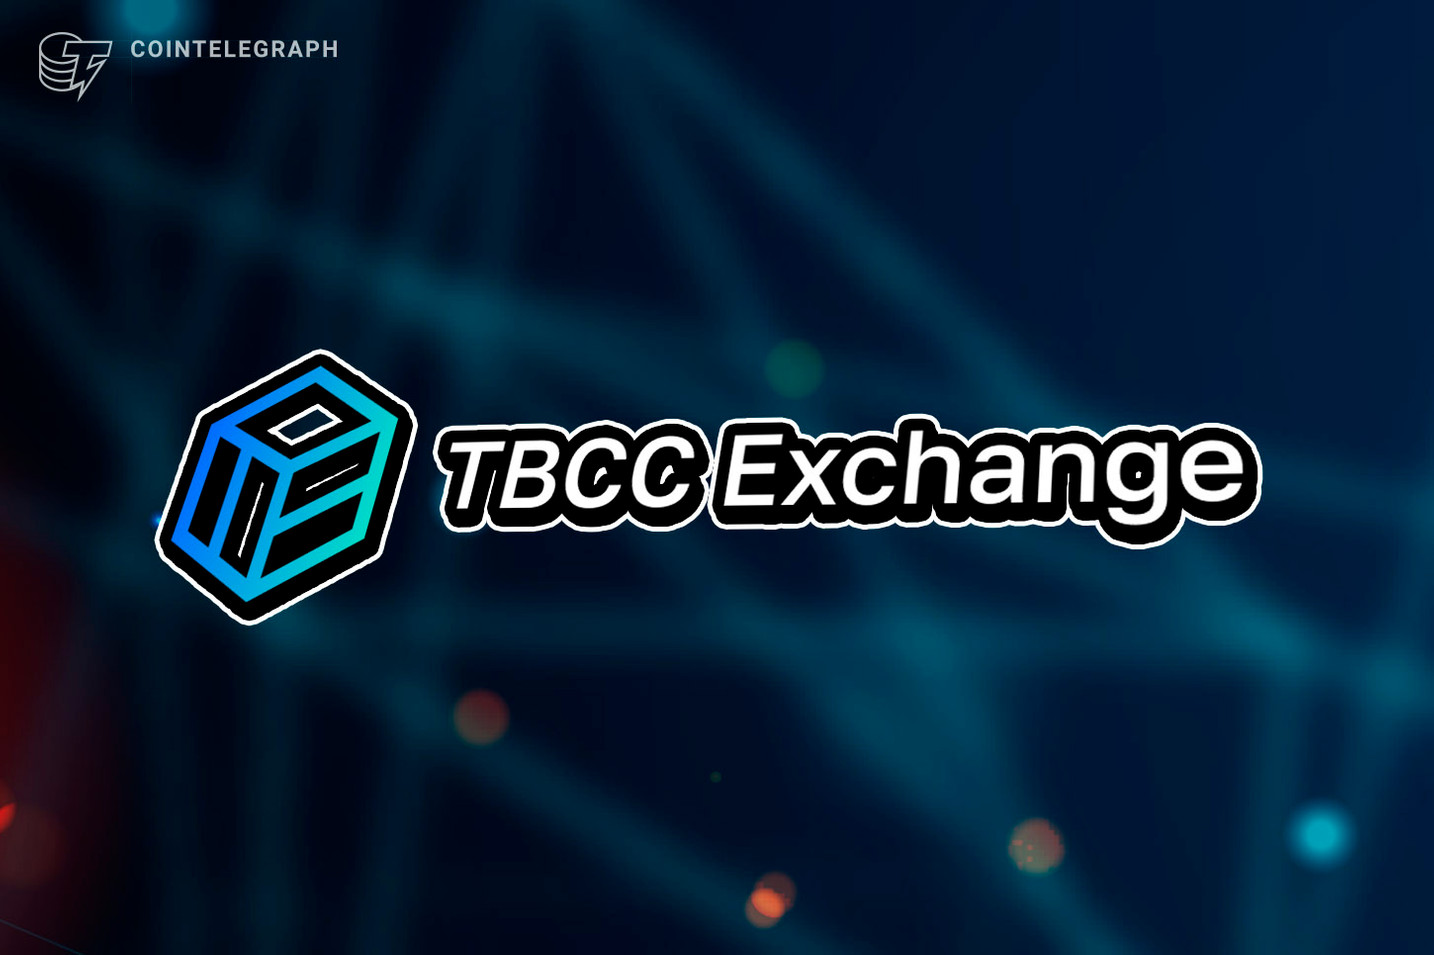 TBCC launches new exchange based on Binance Cloud